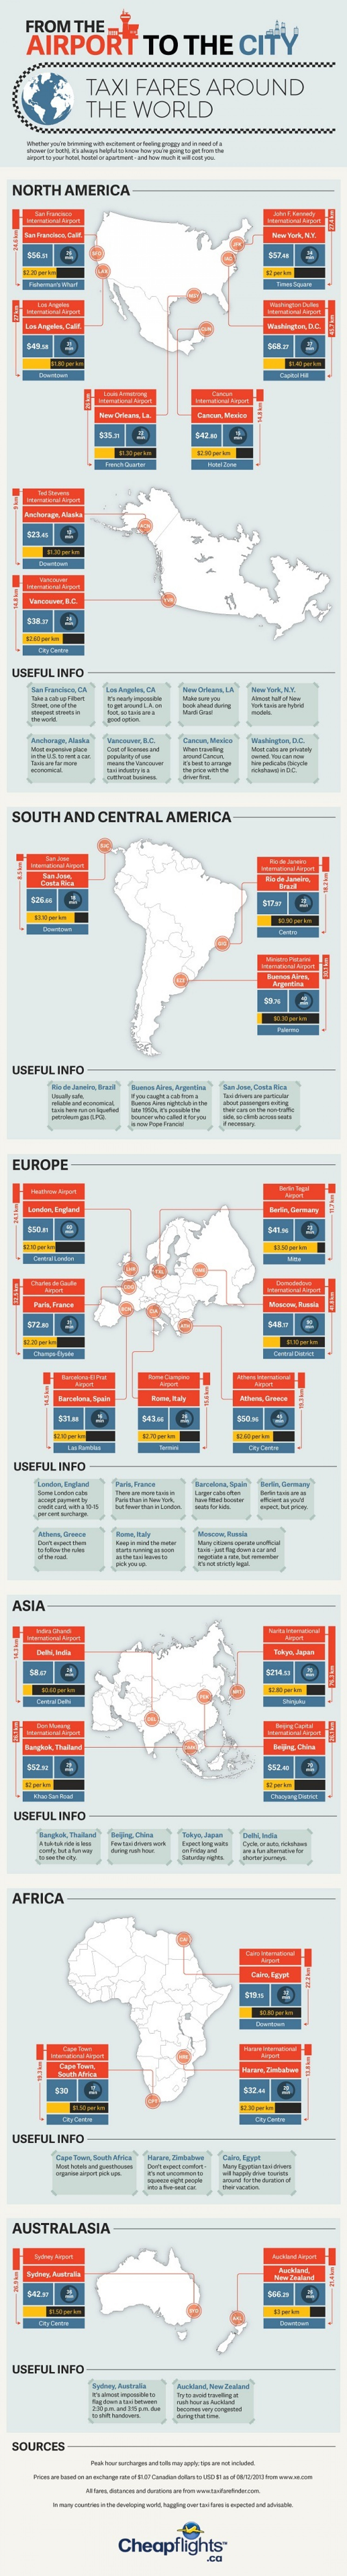 From Airport to City: Taxi Fares Around the World Infographic